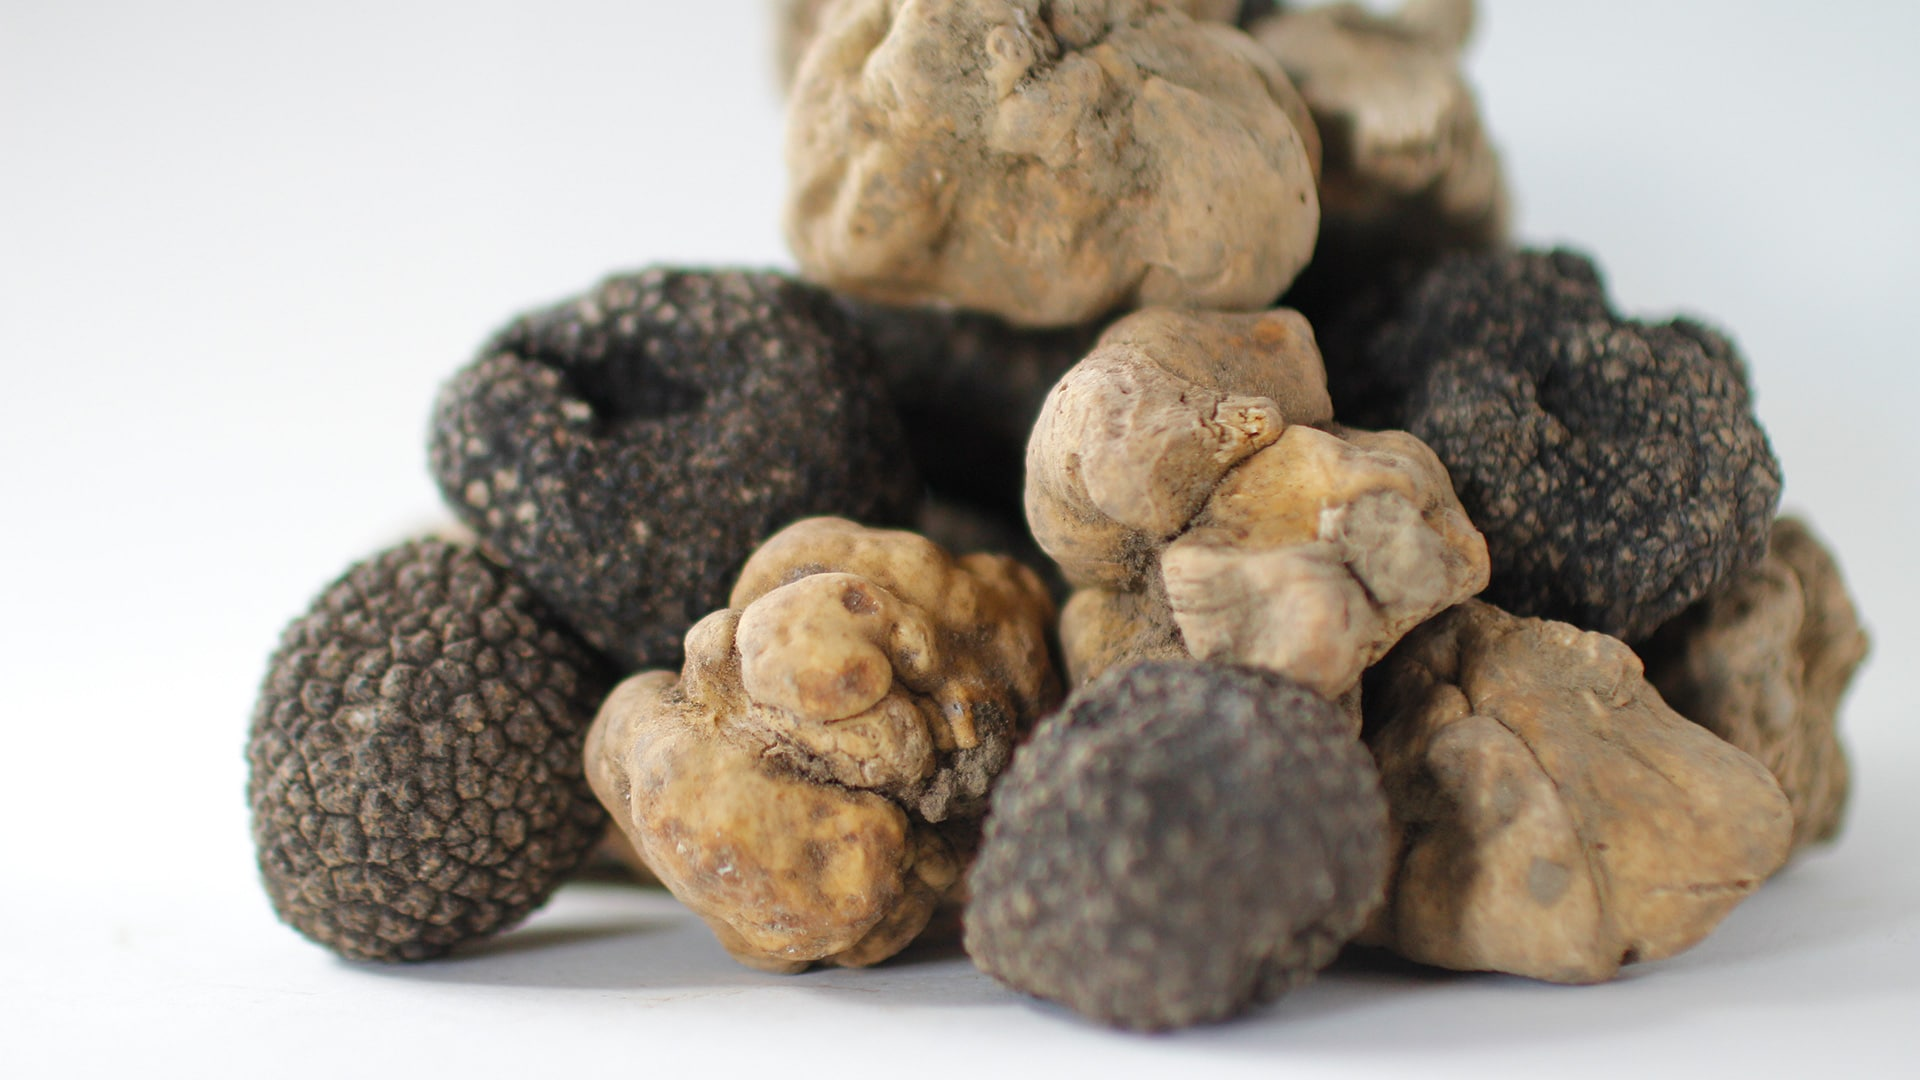 Spieces of Truffle